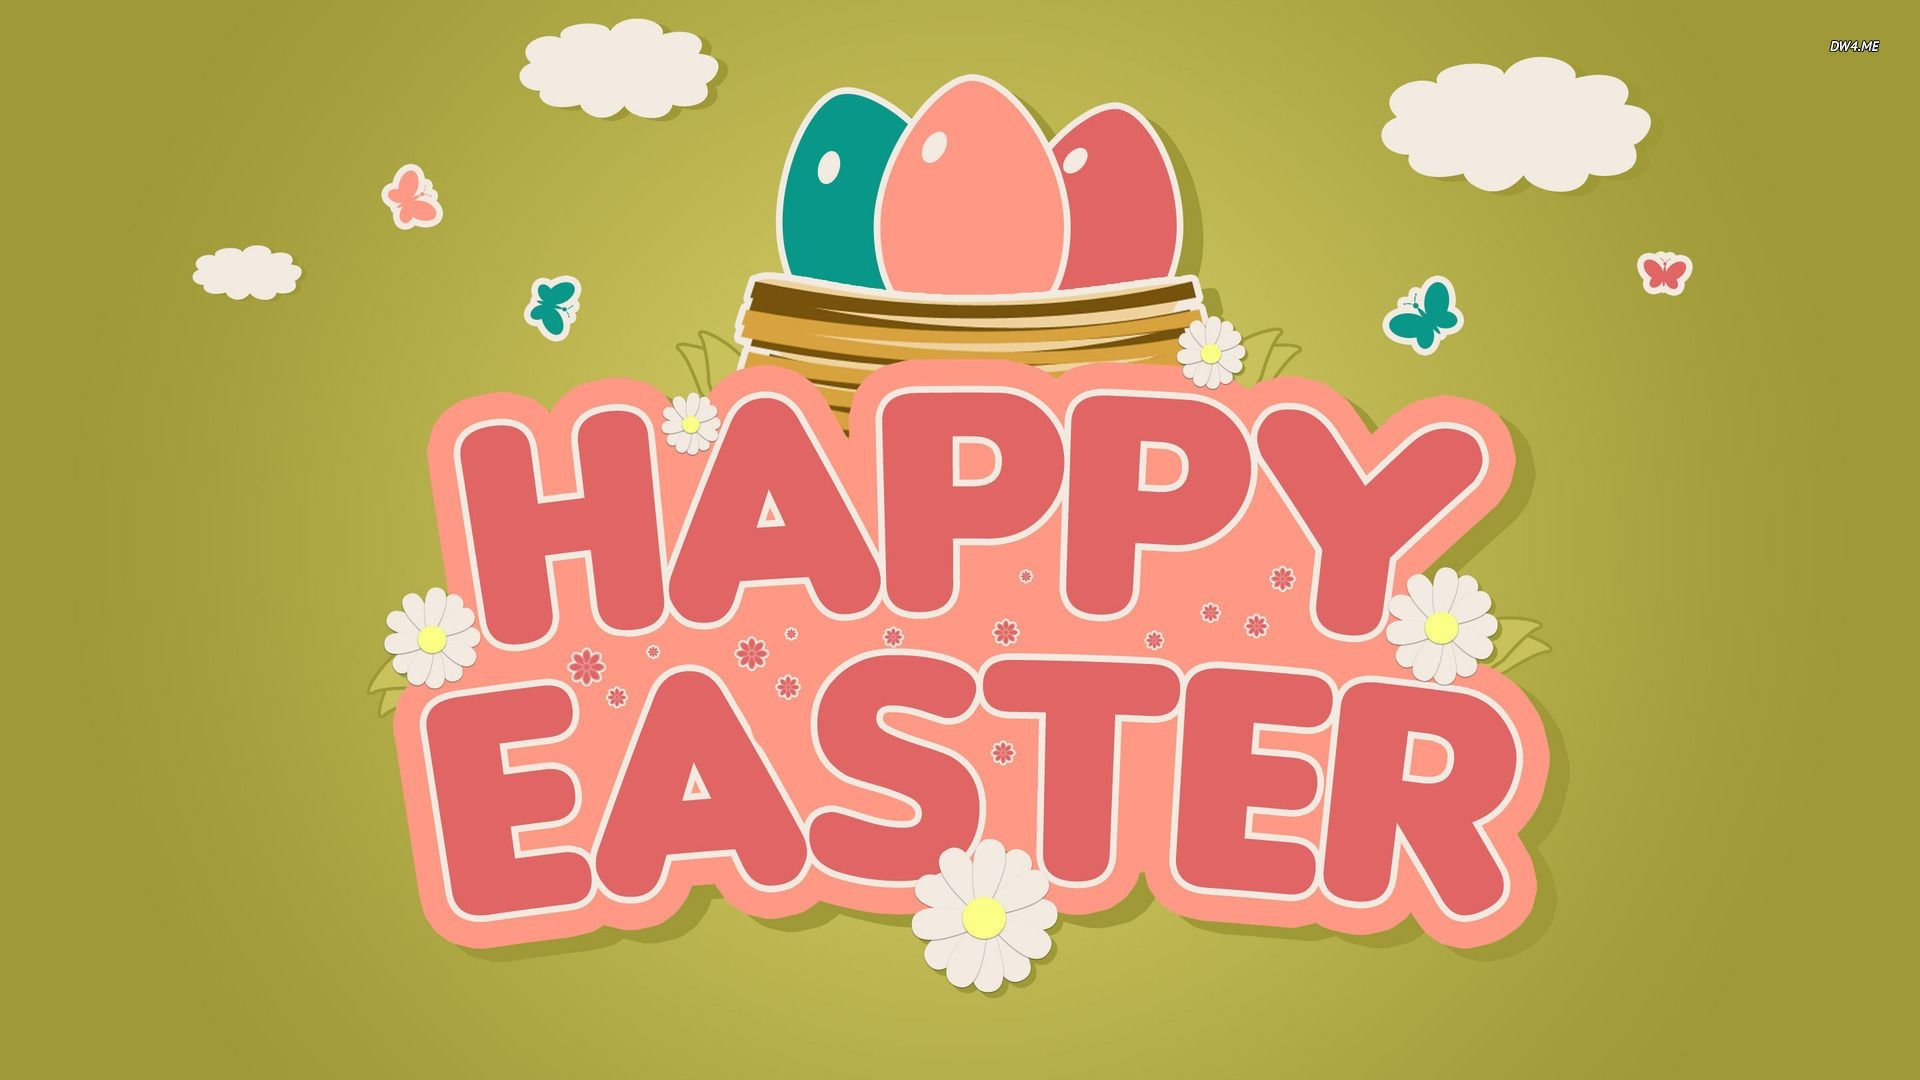 1920x1080 Image Happy Easter